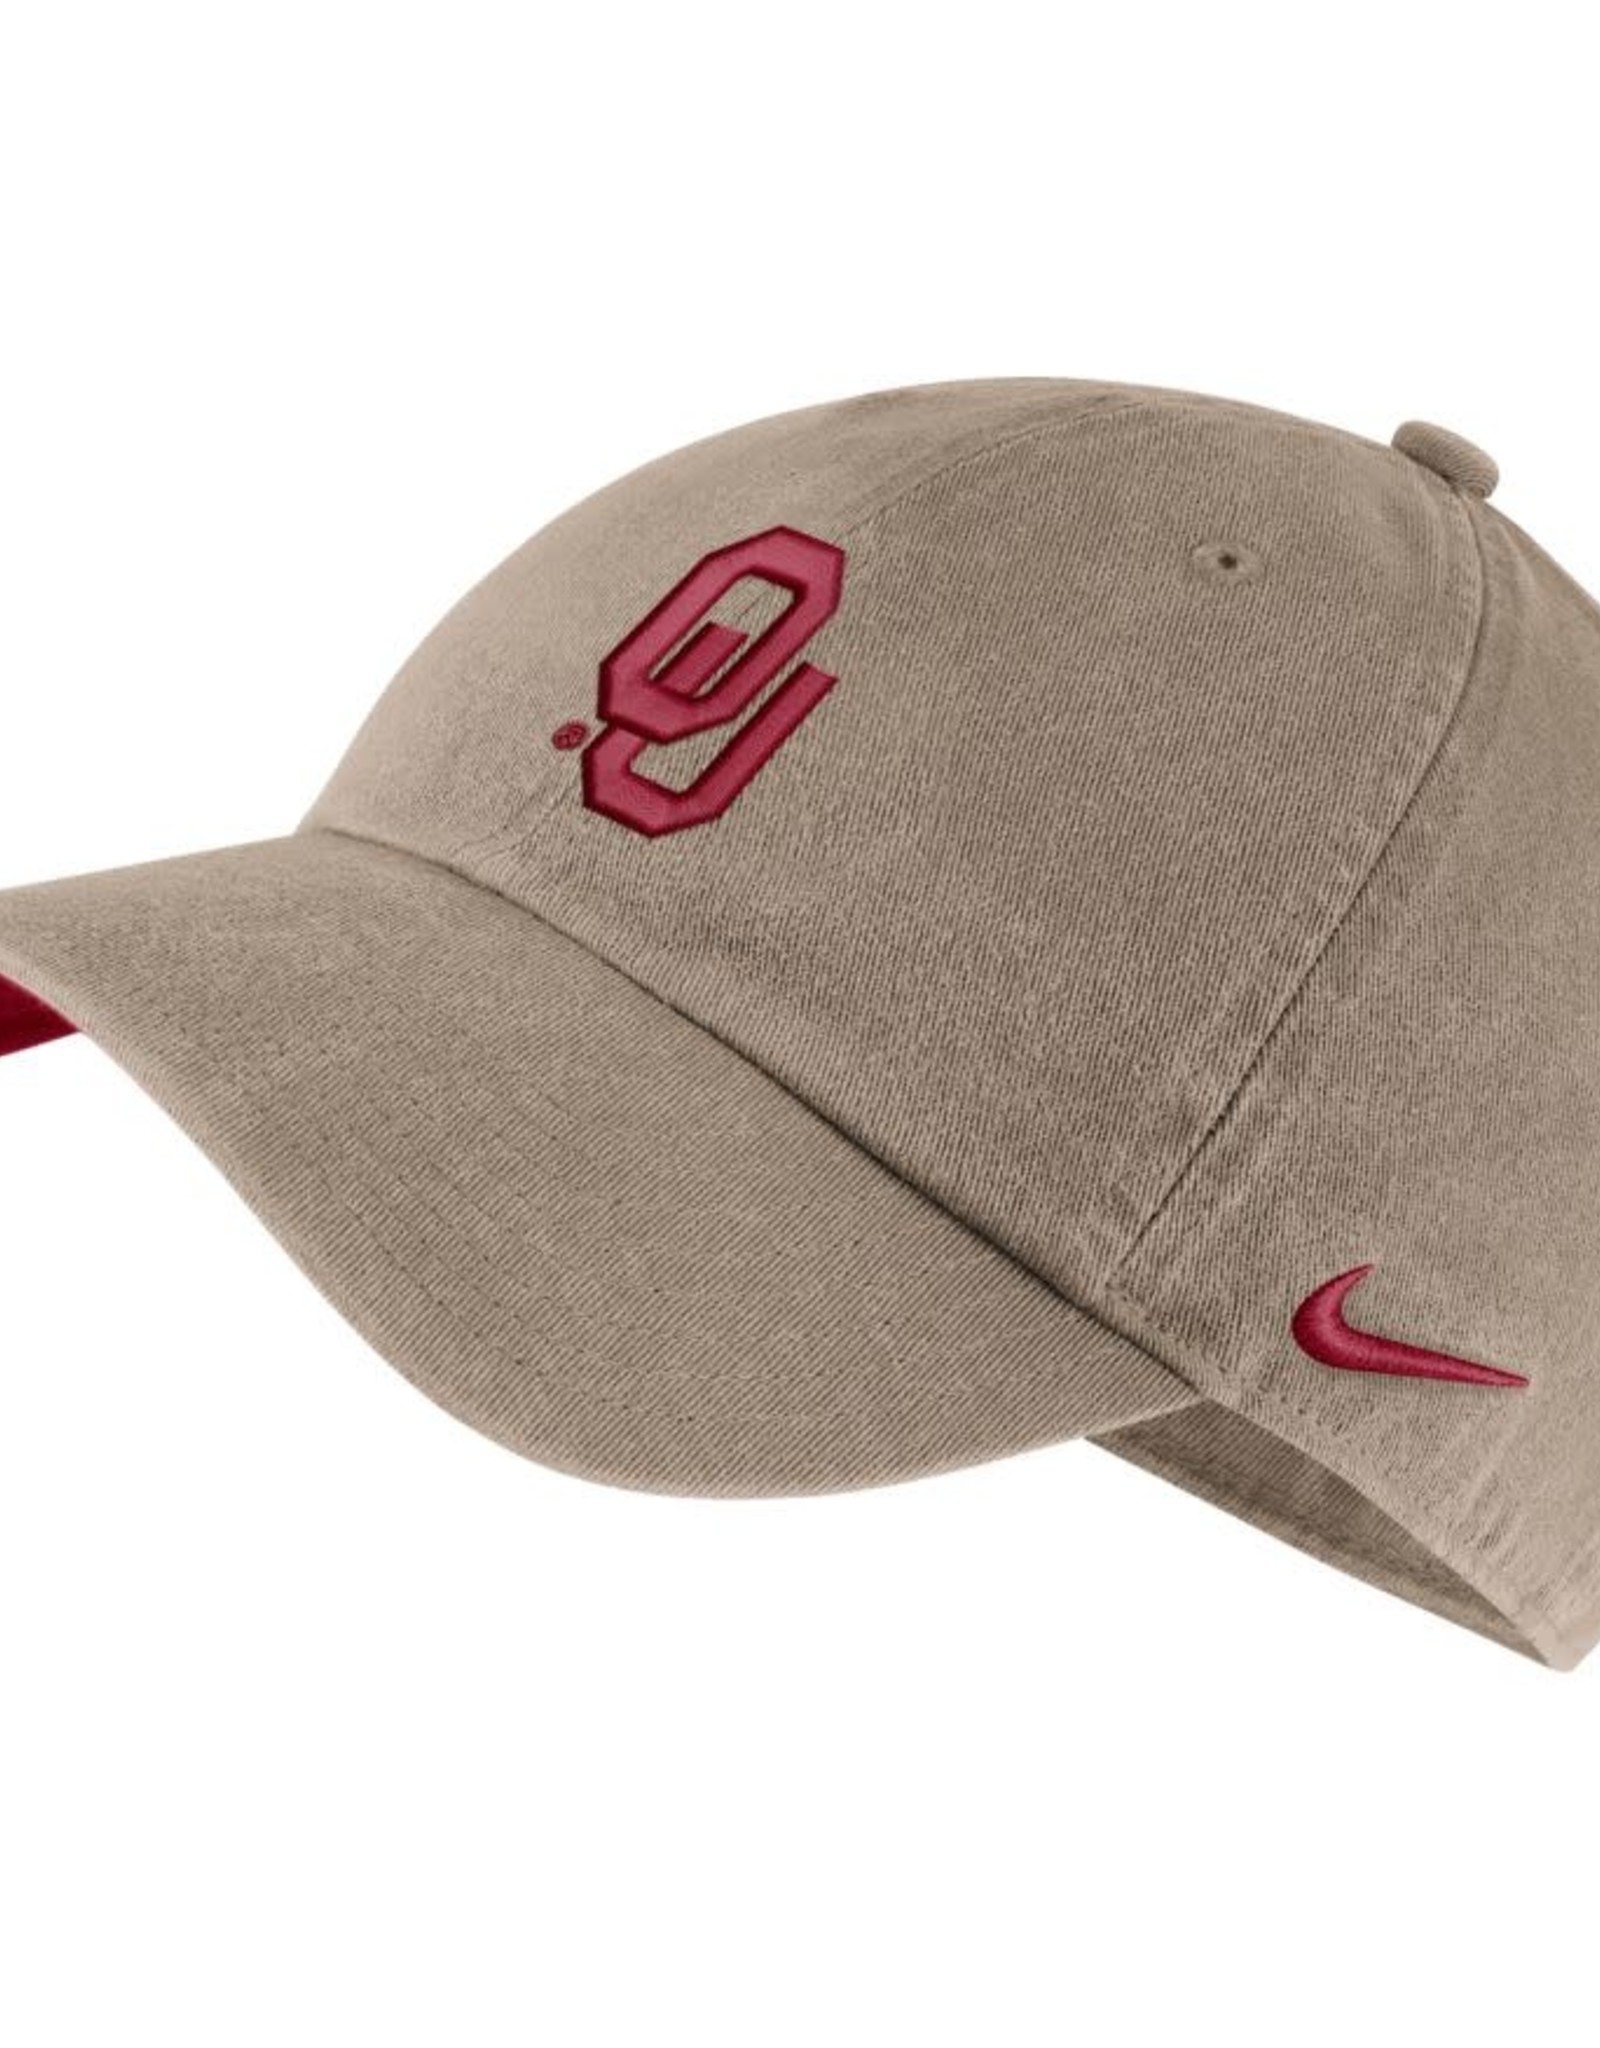 Nike Men's Nike OU H86 Washed Khaki Hat